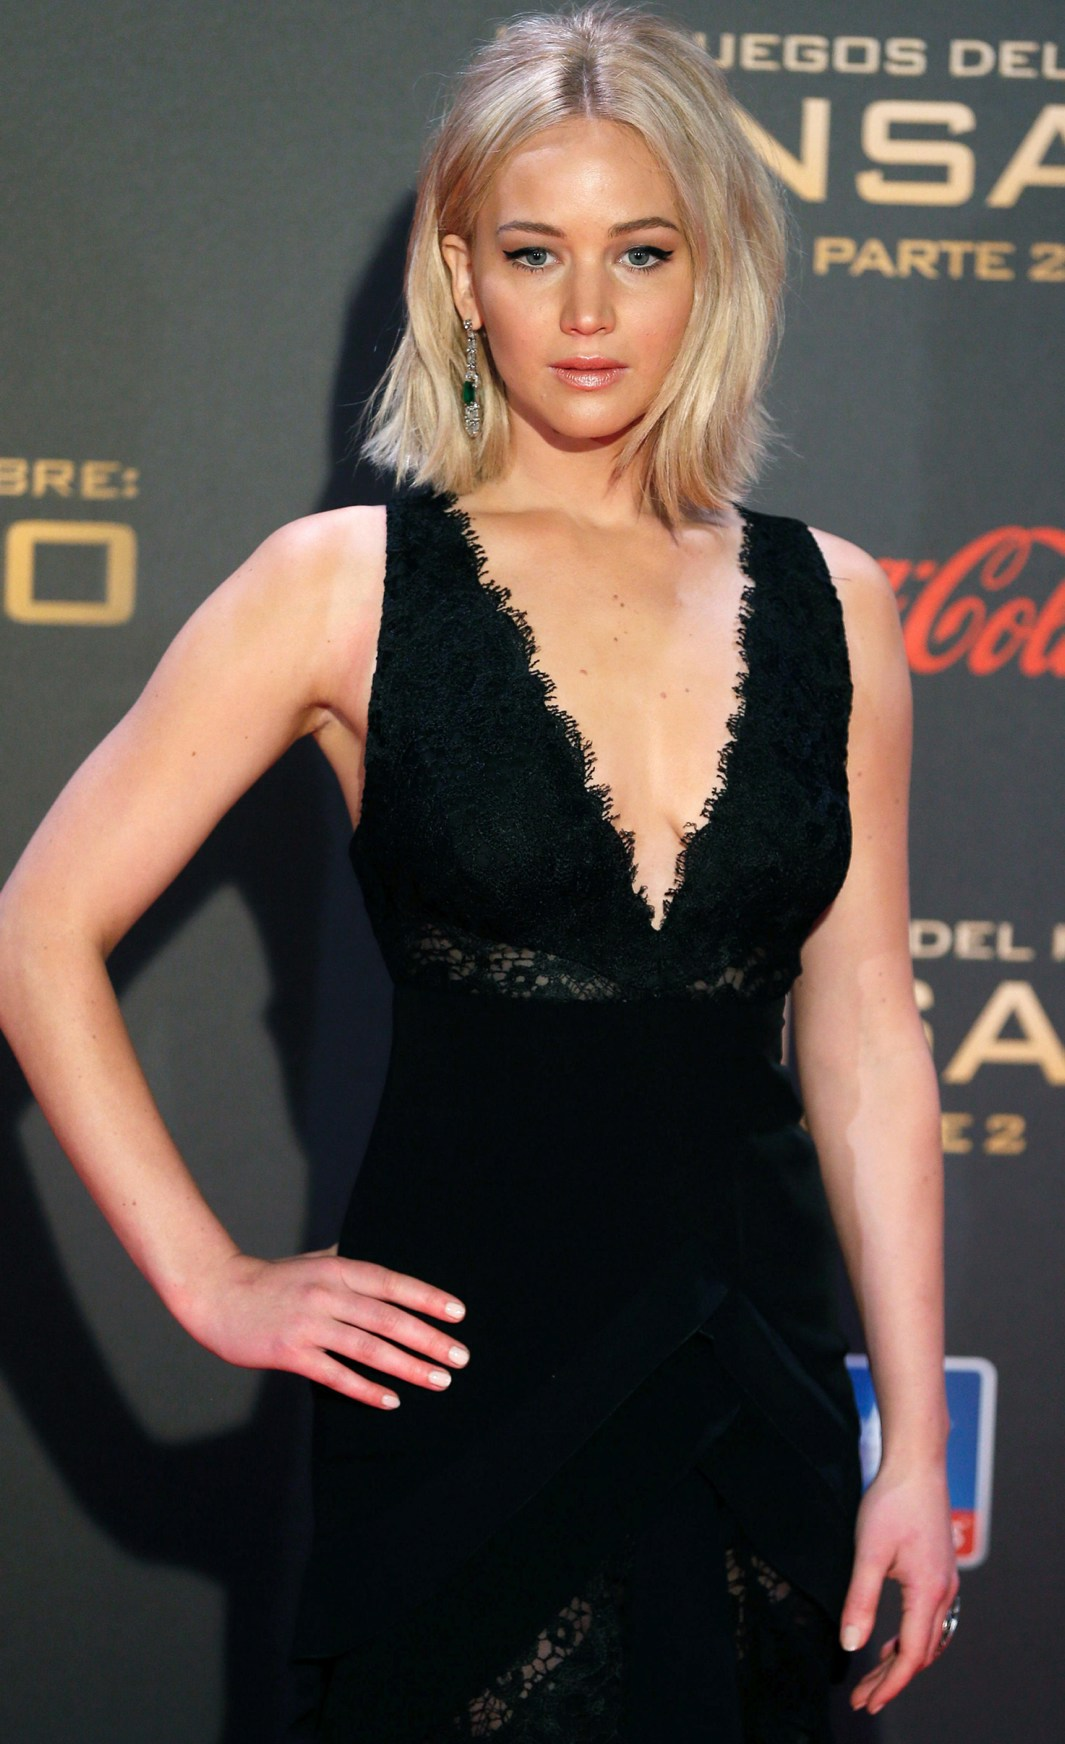 Jennifer Lawrence - 'The Hunger Games Mockingjay' Part 2 Premiere in Madrid